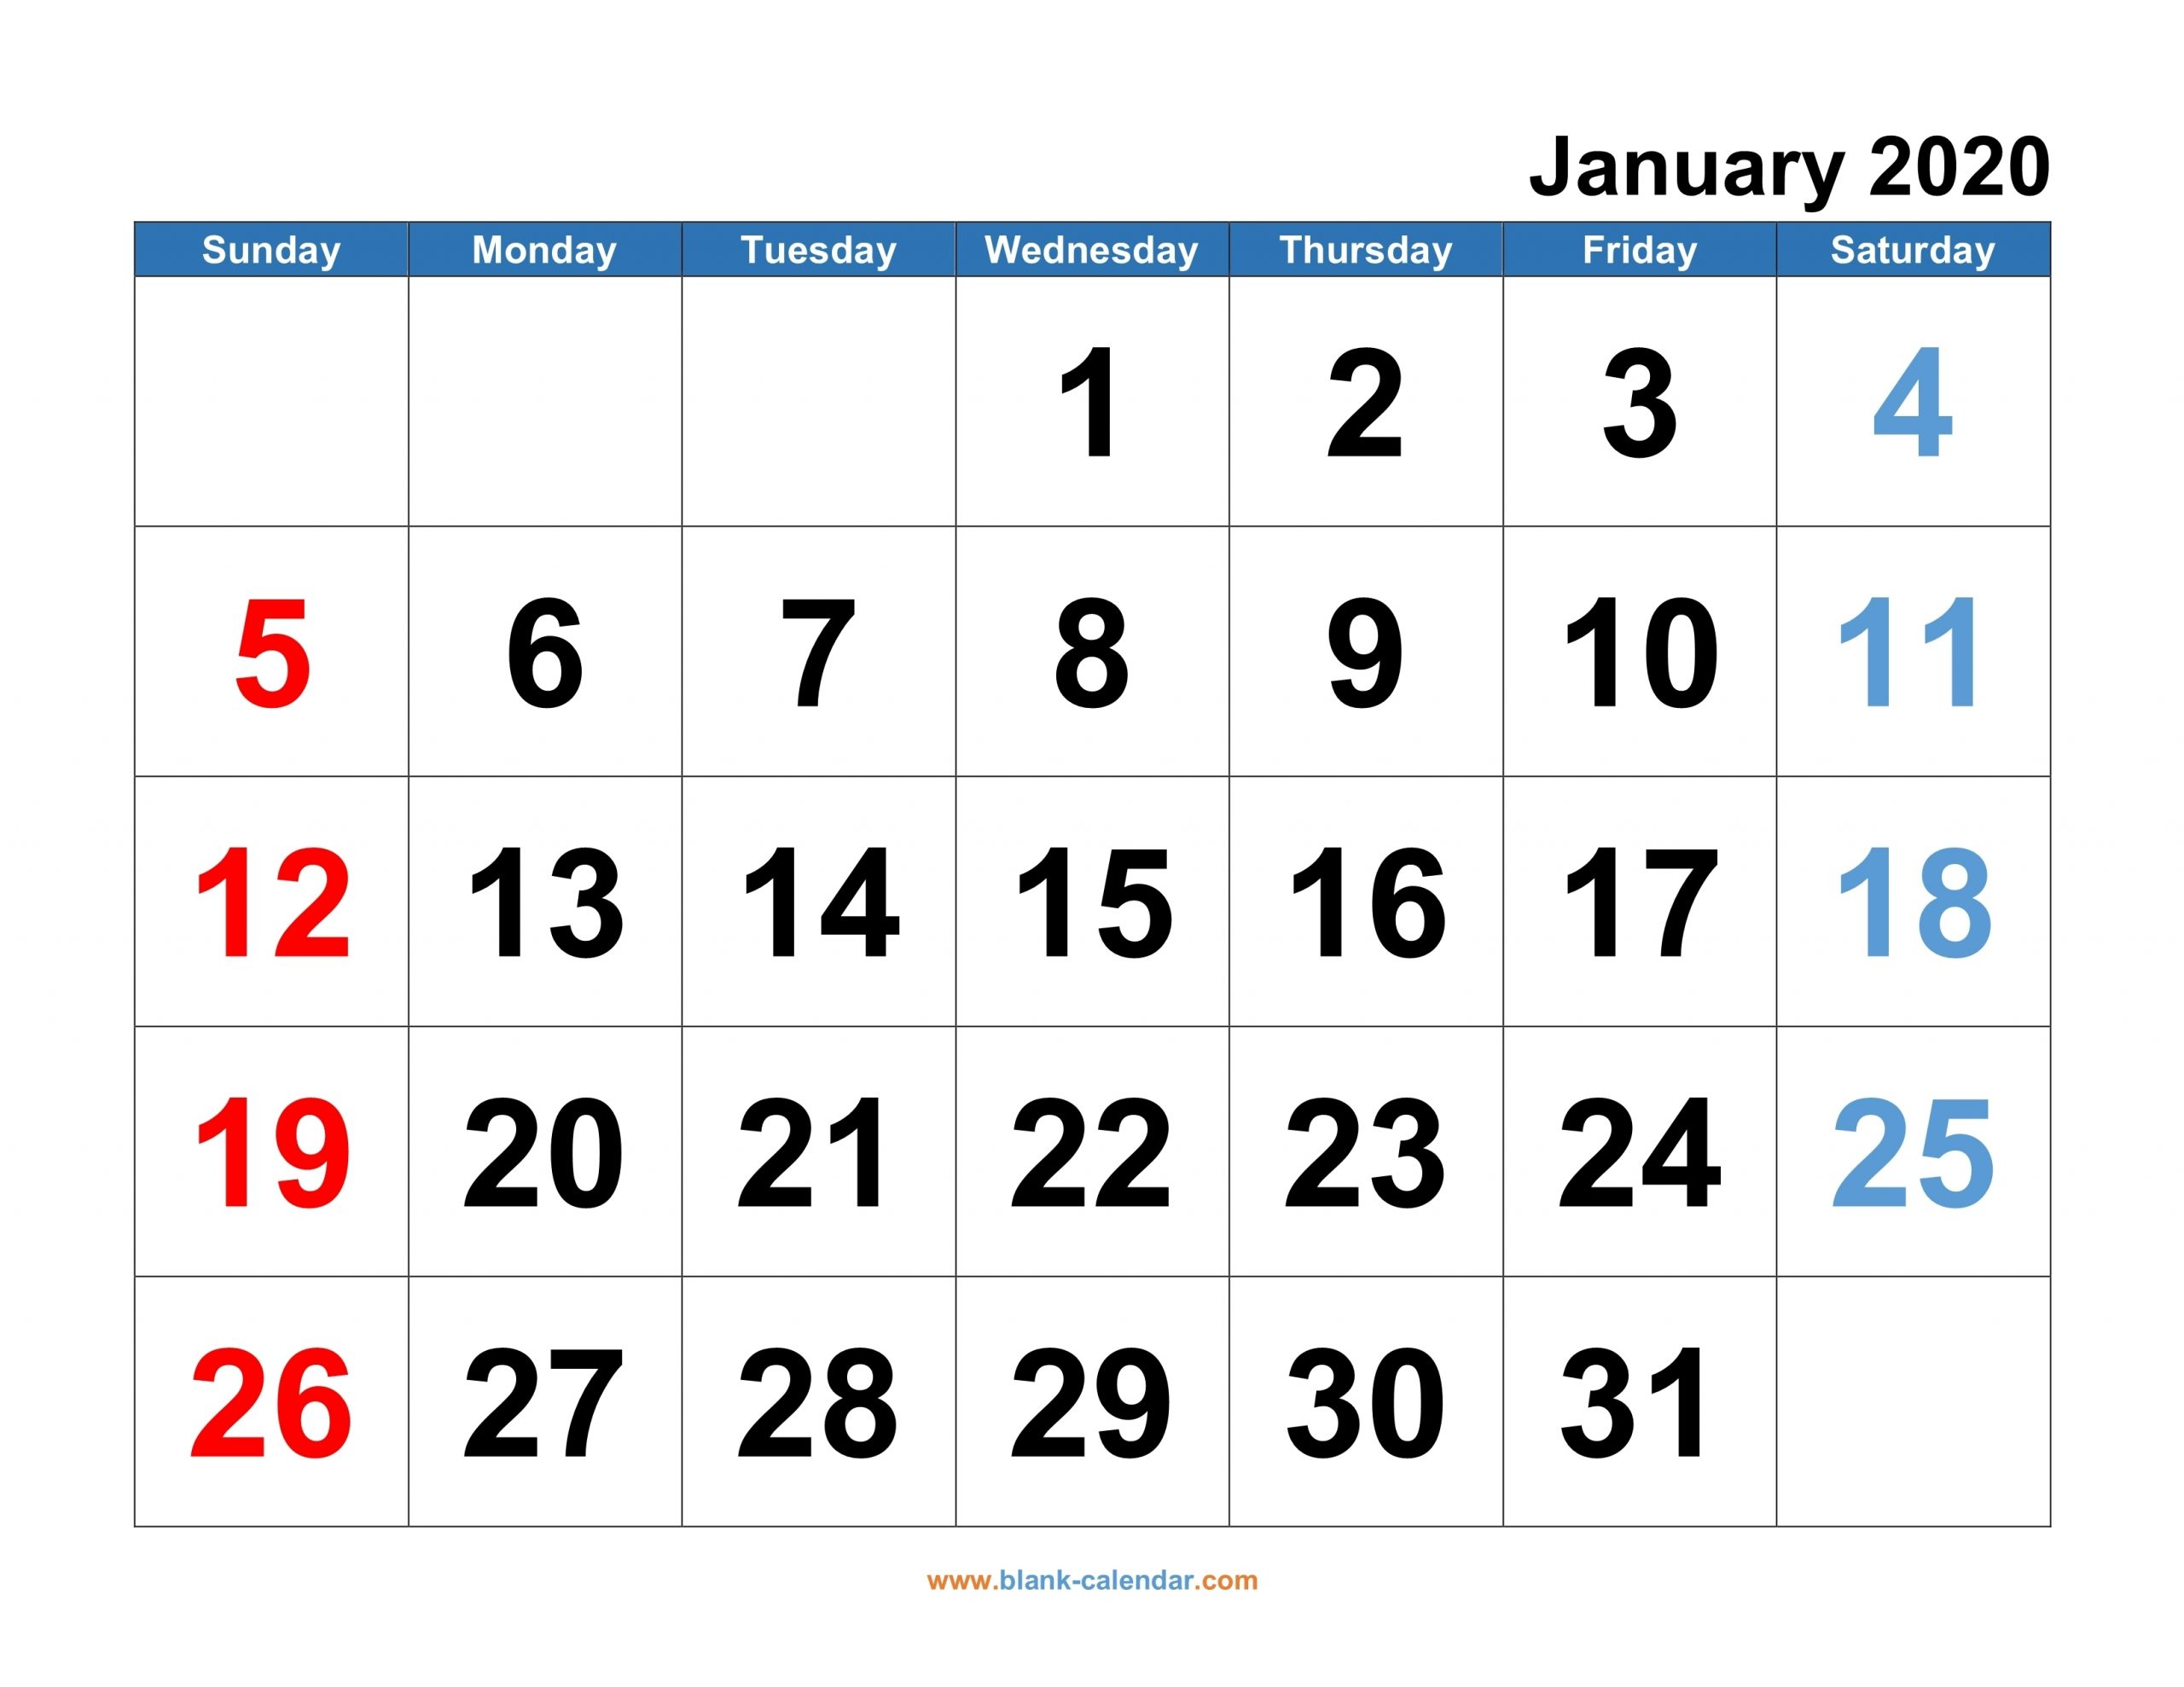 Monthly Calendar 2020 | Free Download, Editable And Printable with regard to Free Printable 2020 Calendars Large Numbers